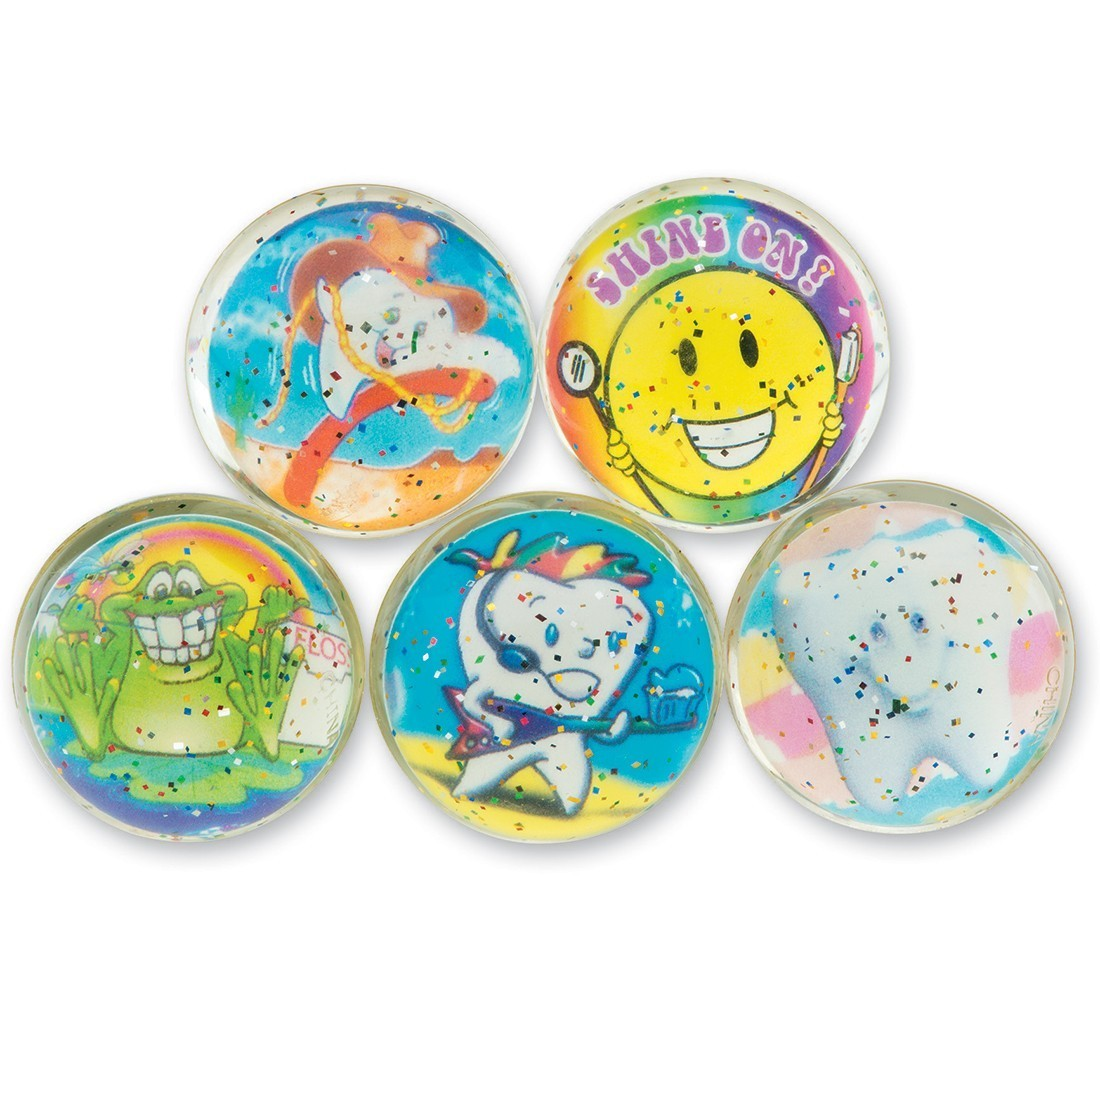 32mm Glitter Silly Smiles Dental Bouncing Balls [image]